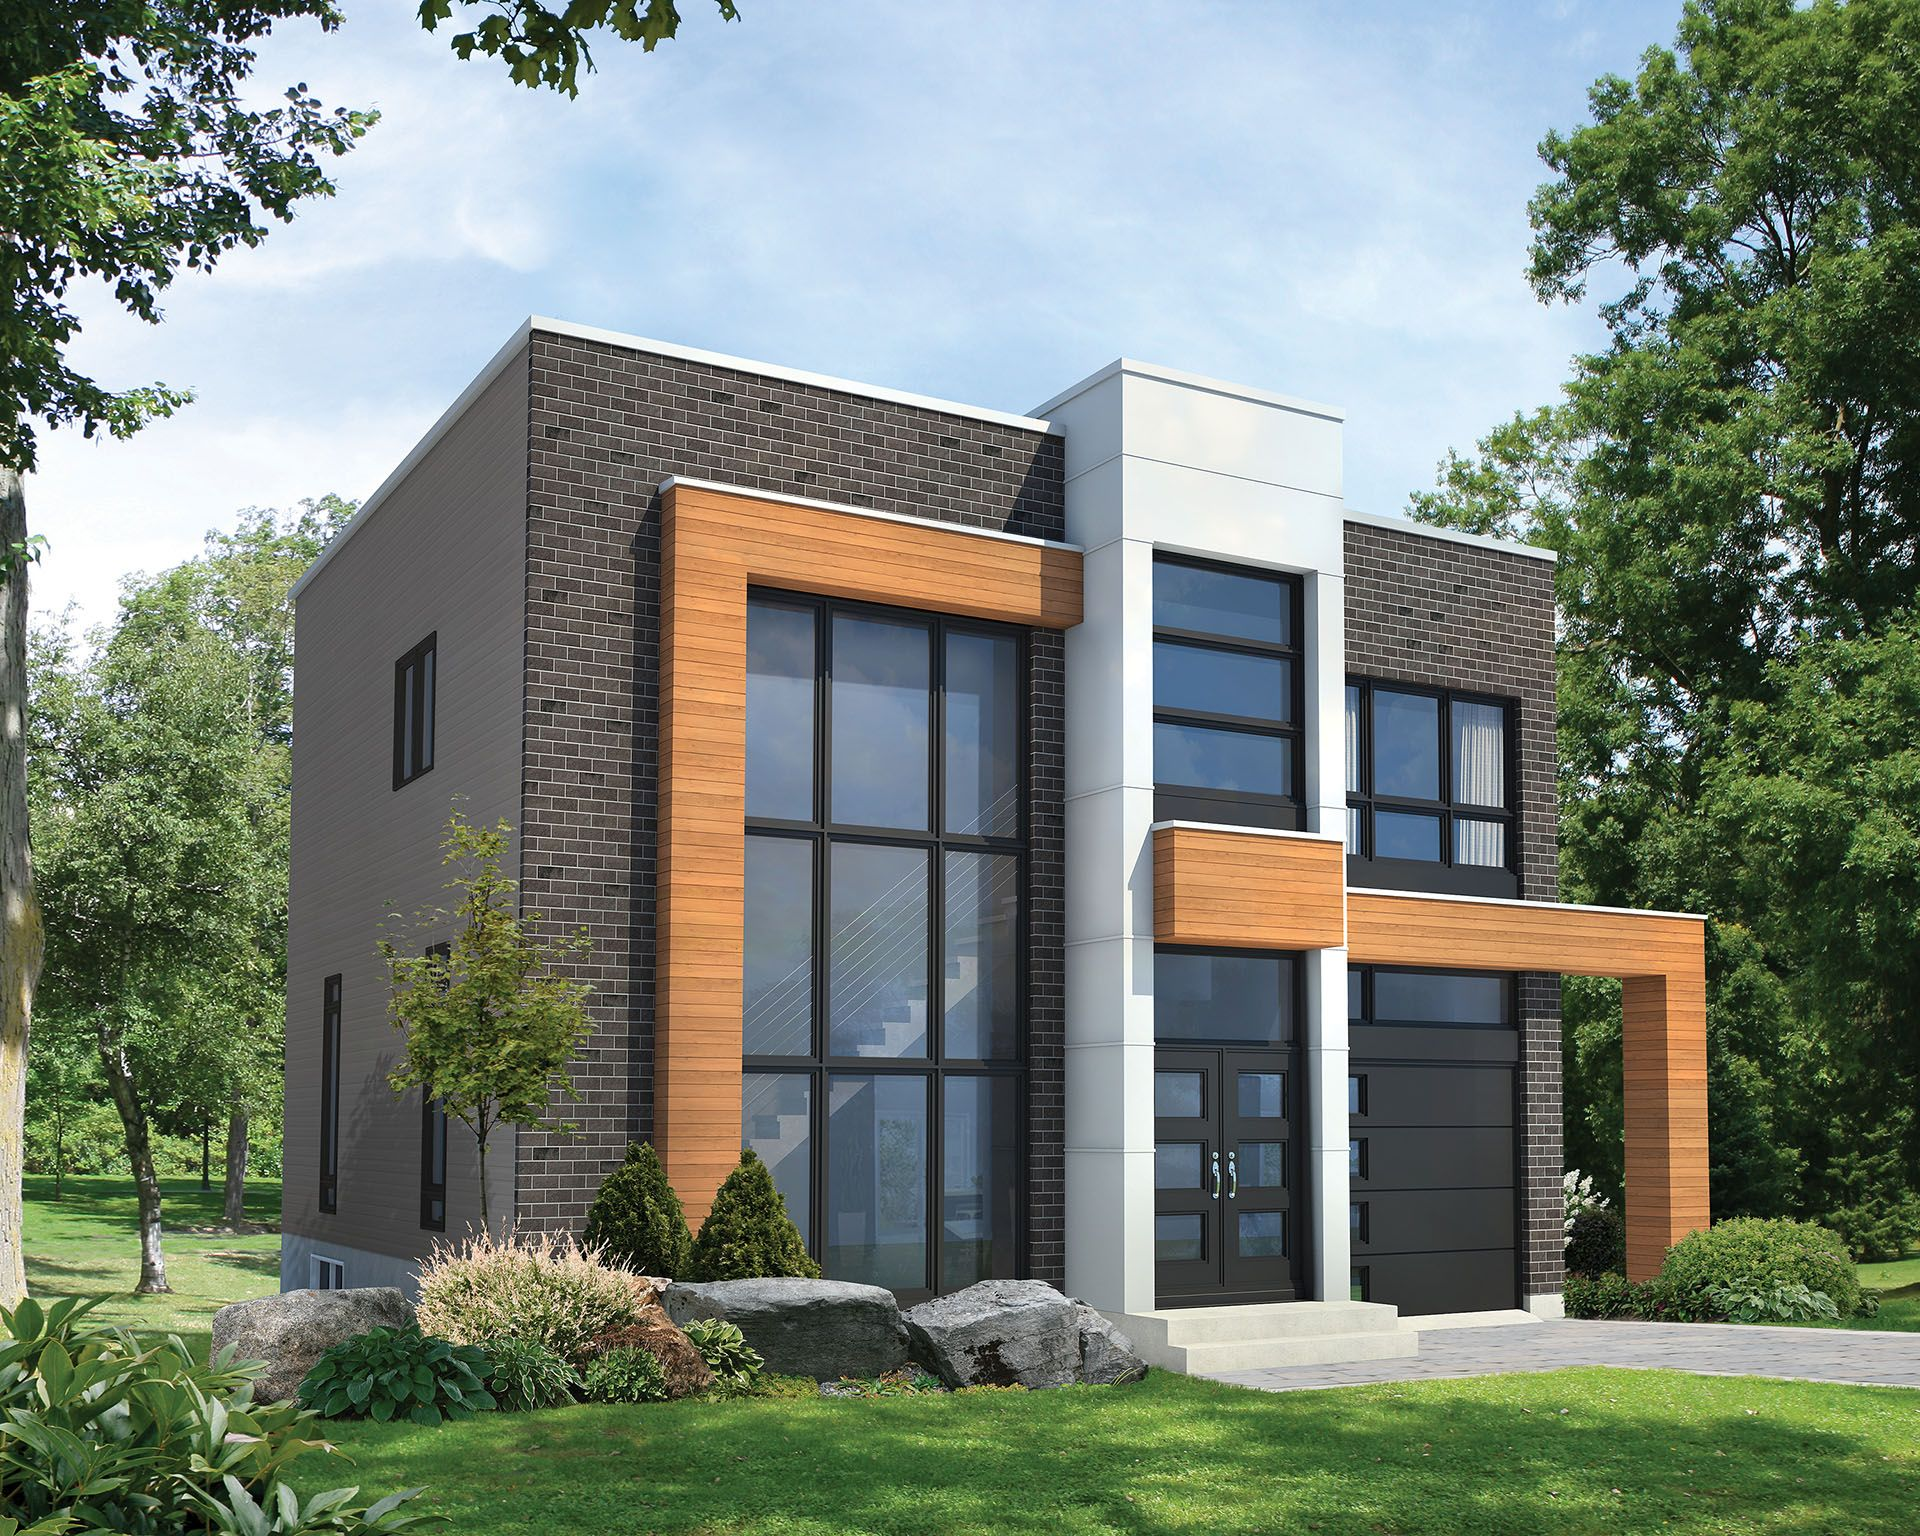 Plan 80827PM: Open Concept Modern House Plan in 2018 | Wood ... on modern indian house, modern asian house, modern japanese house, modern santa fe house, modern german house, modern singaporean house, modern ethiopian house, modern cambodian house, modern afghan house, modern pakistani house, modern orange house, modern african house, modern israeli house, modern brazilian house, modern turkish house, modern filipino house, modern russian house, modern korean house, modern sri lankan house, modern norwegian house,